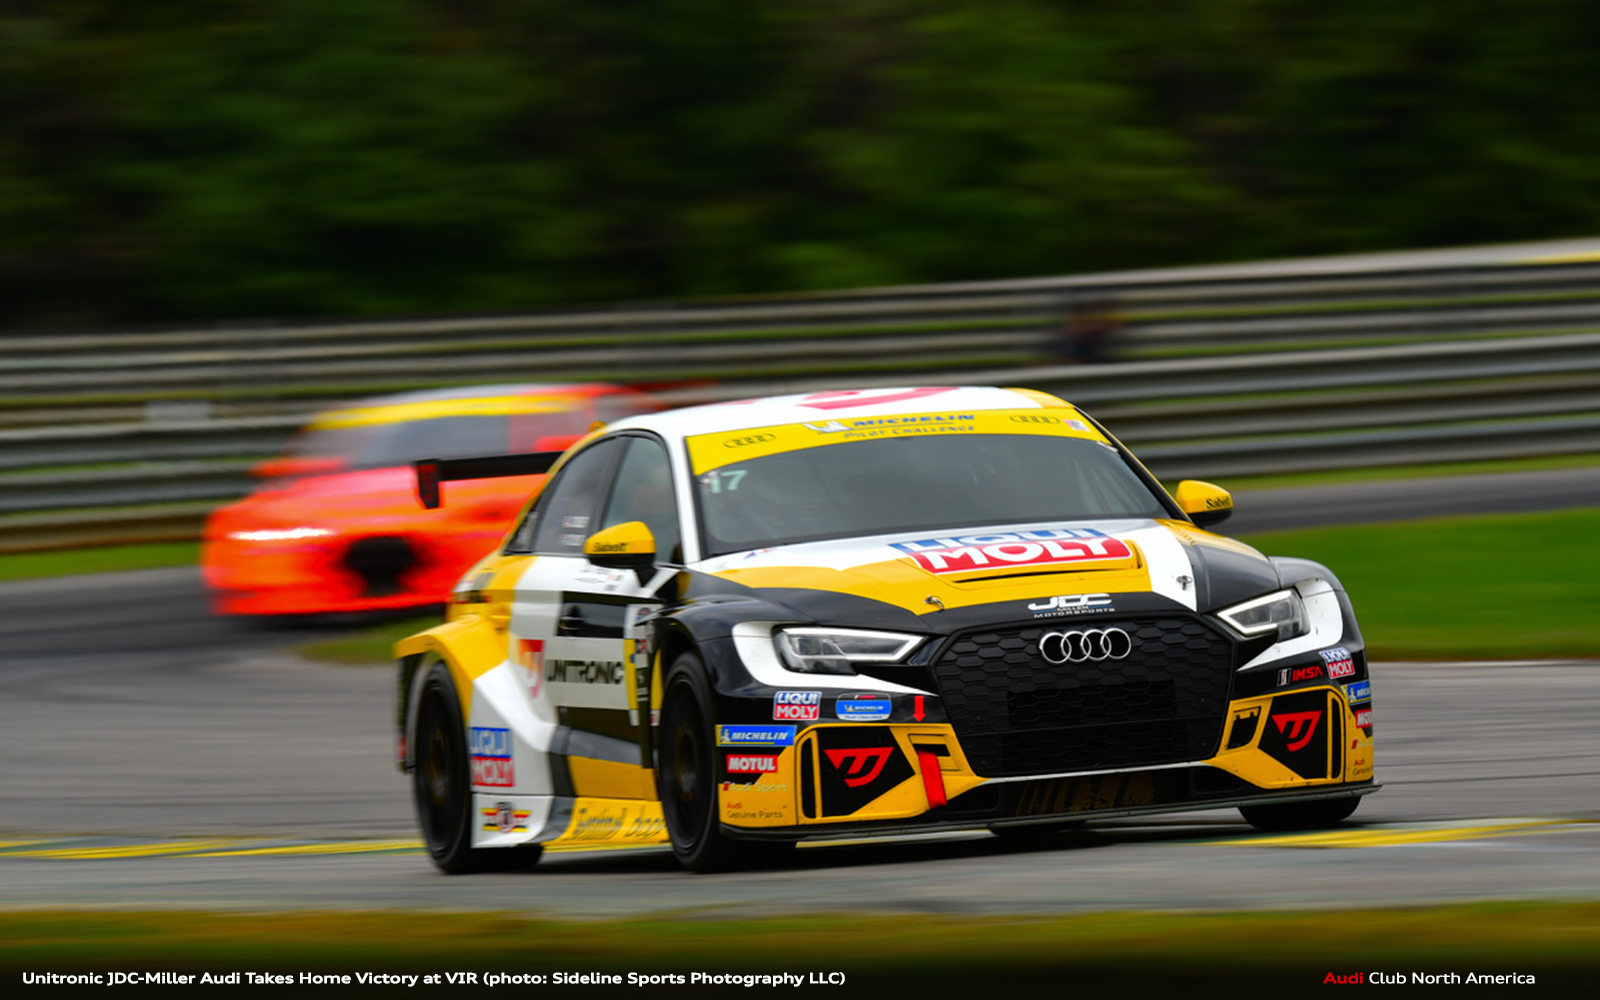 Unitronic JDC-Miller Audi Takes Home Victory at VIR